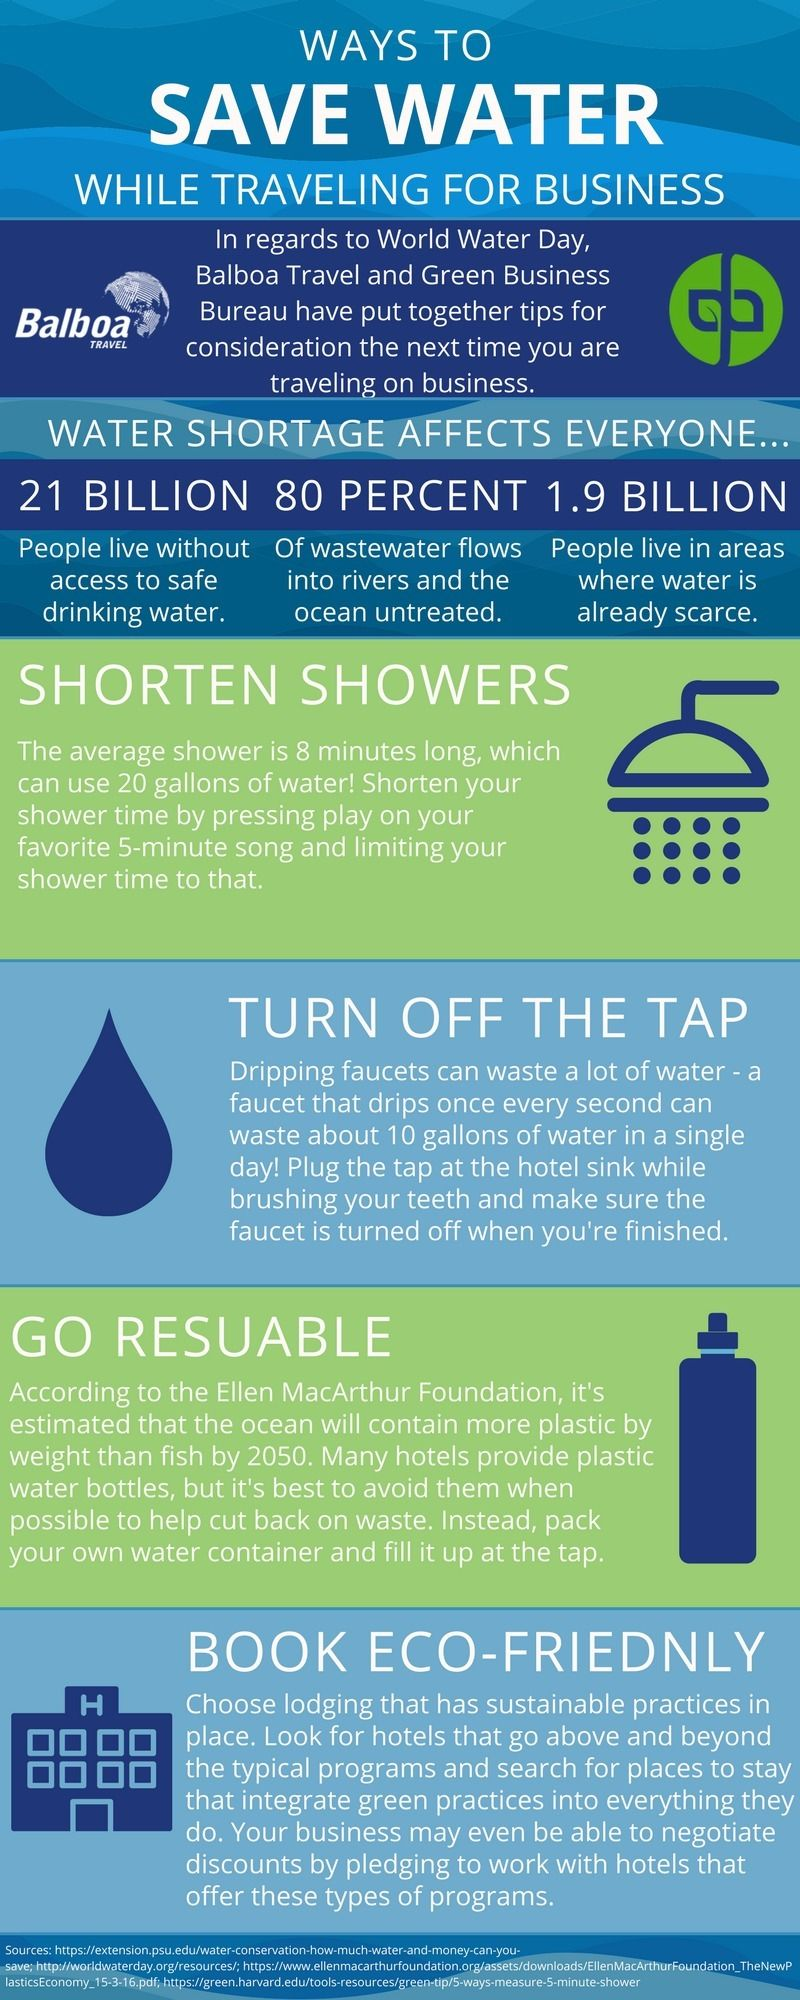 Ways To Save Water While Traveling For Business Ways To Save